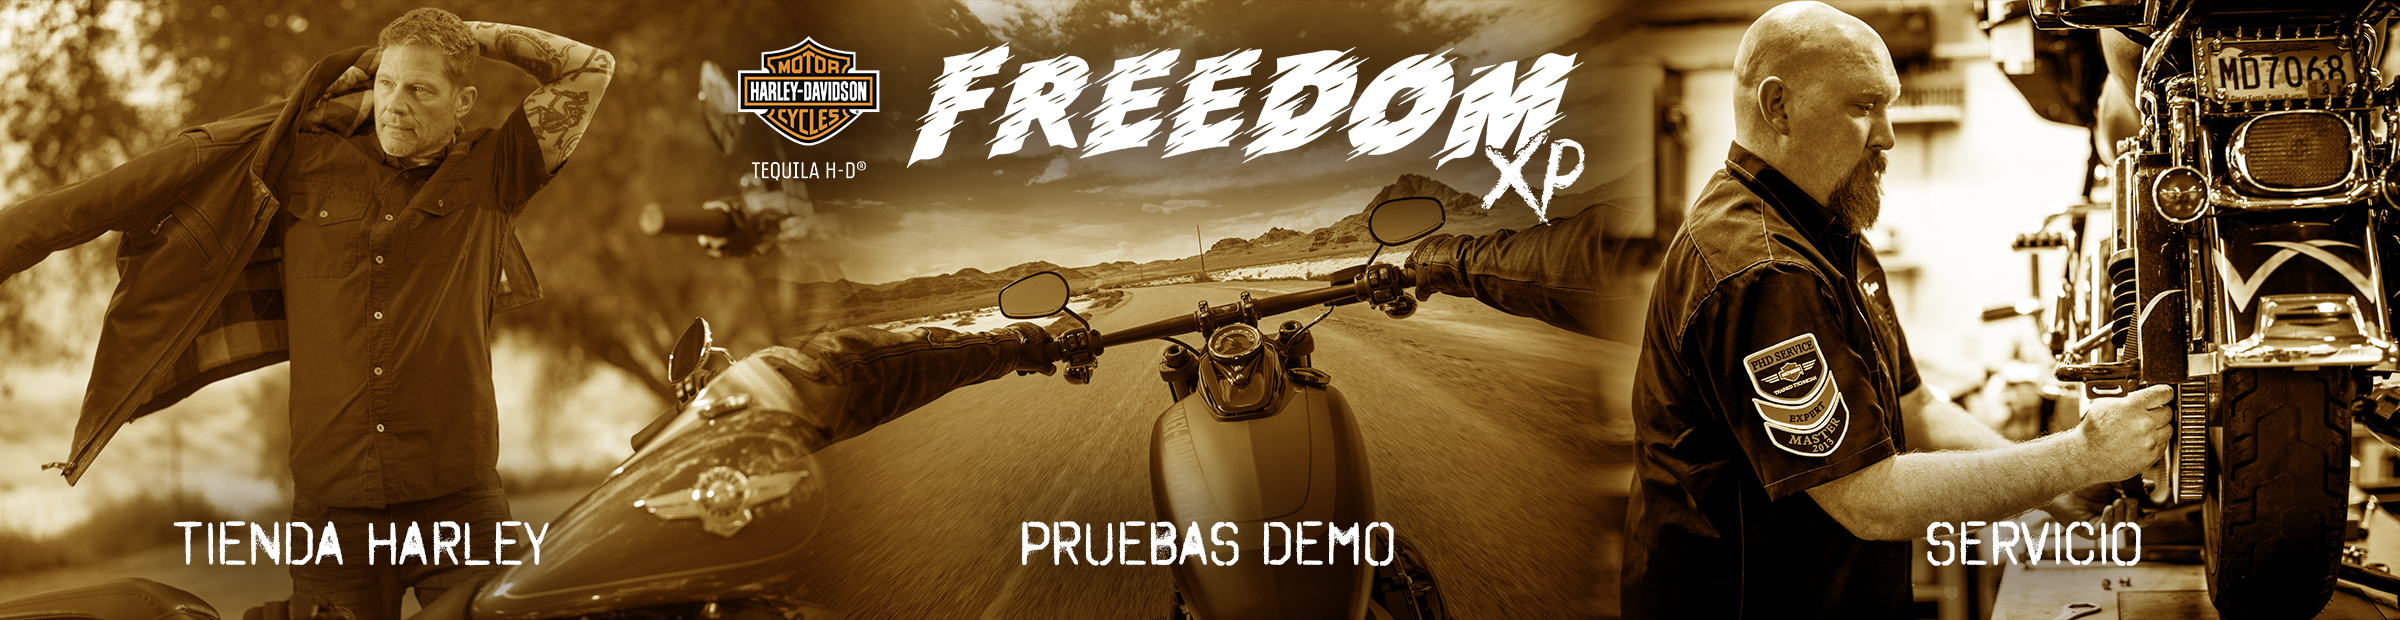 Tequila H-D Freedom XP